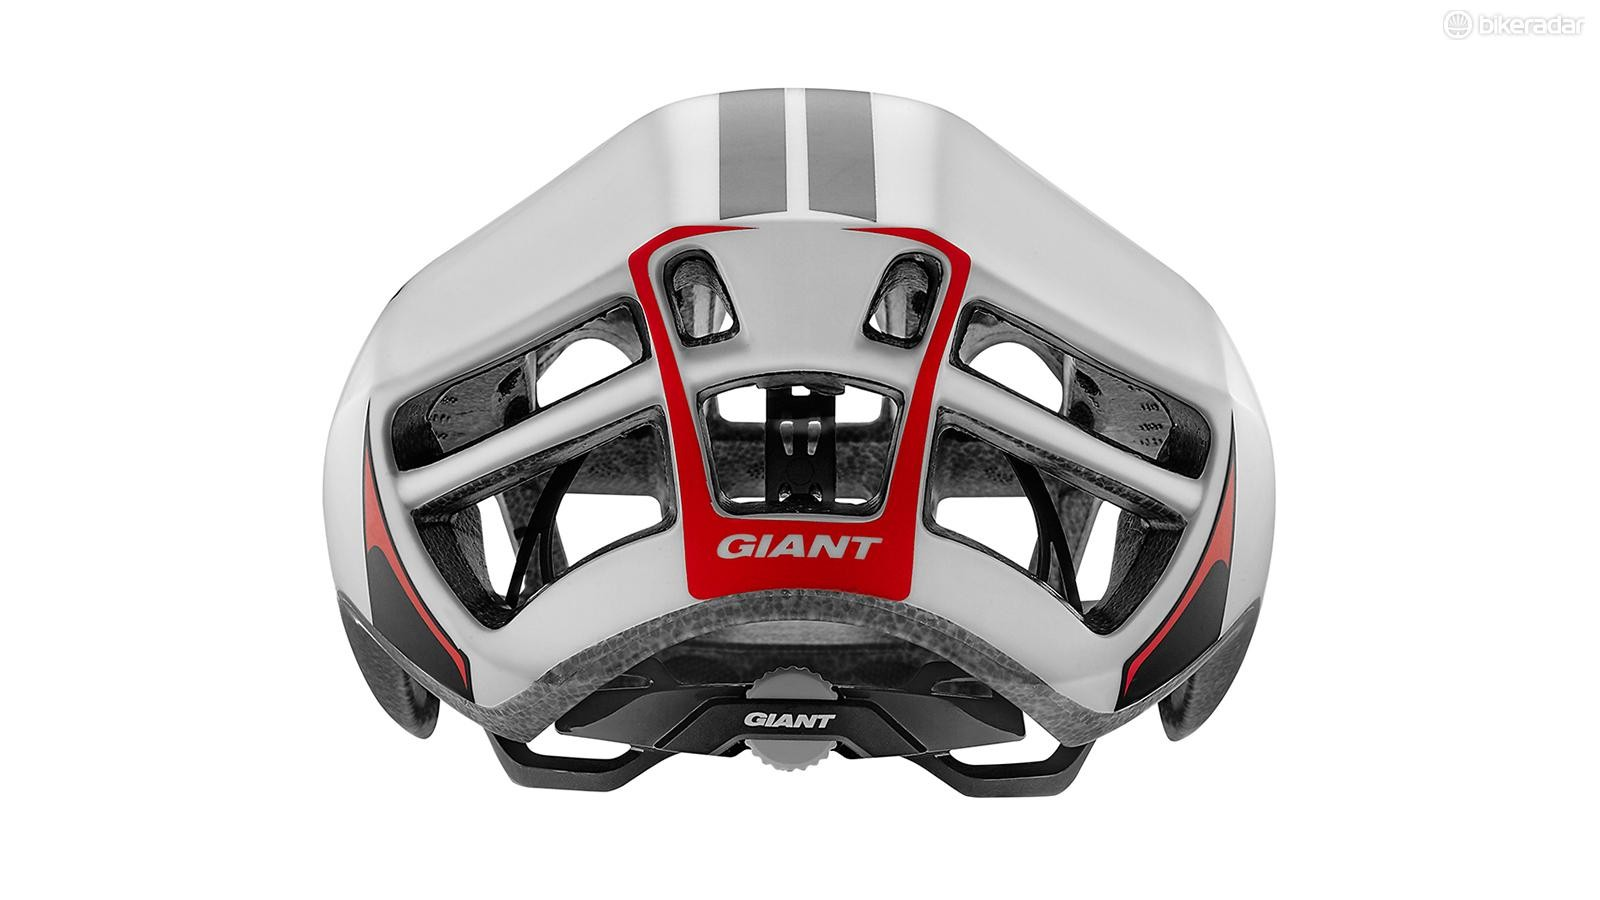 Combined with deep internal channels, the large rear ports help move air across the head